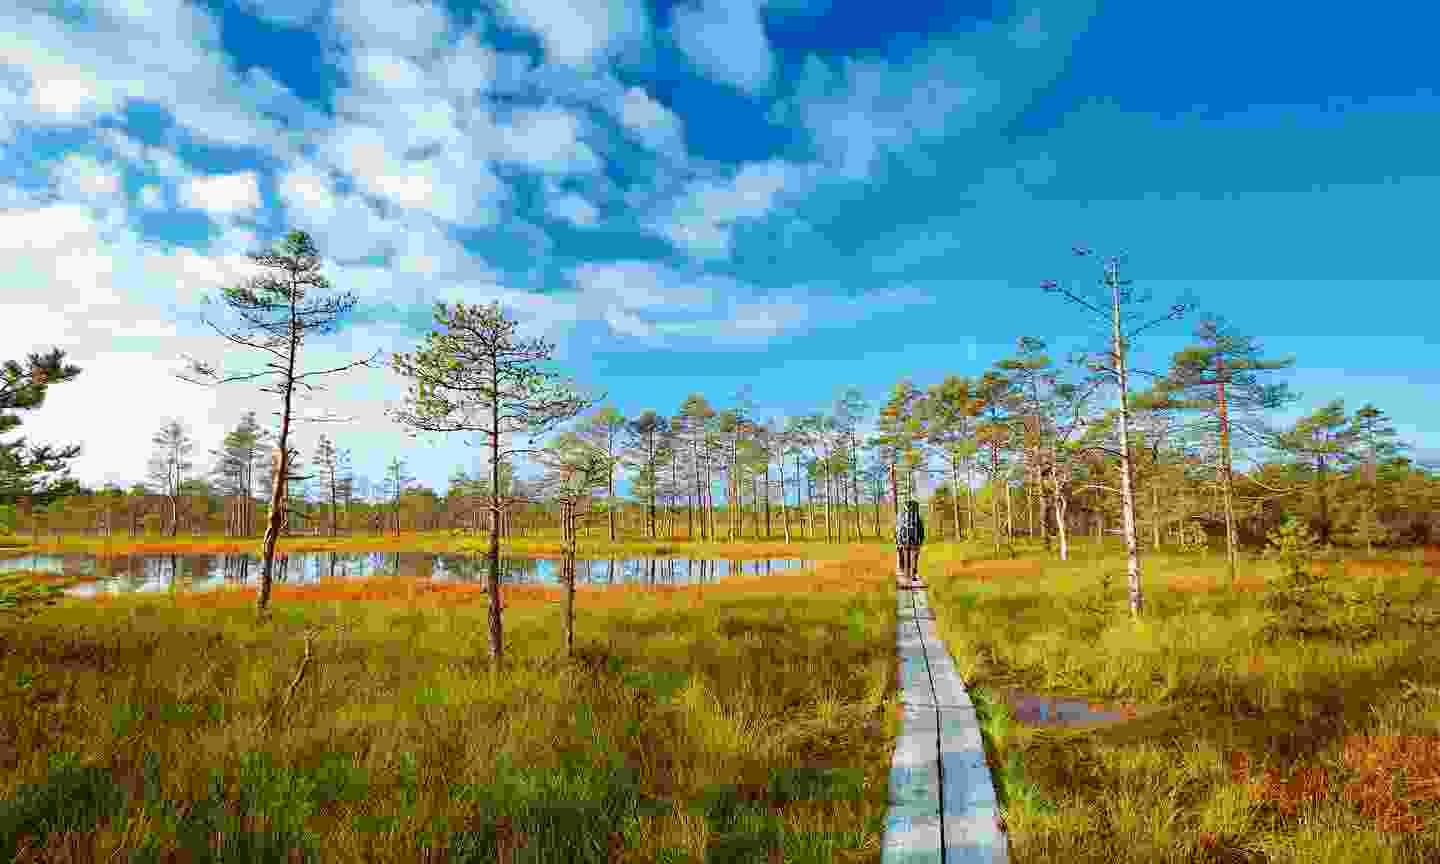 Boardwalks thread the sinking mud of the Viru bogs at Lahemaa, the largest national park in Estonia (Shutterstock)